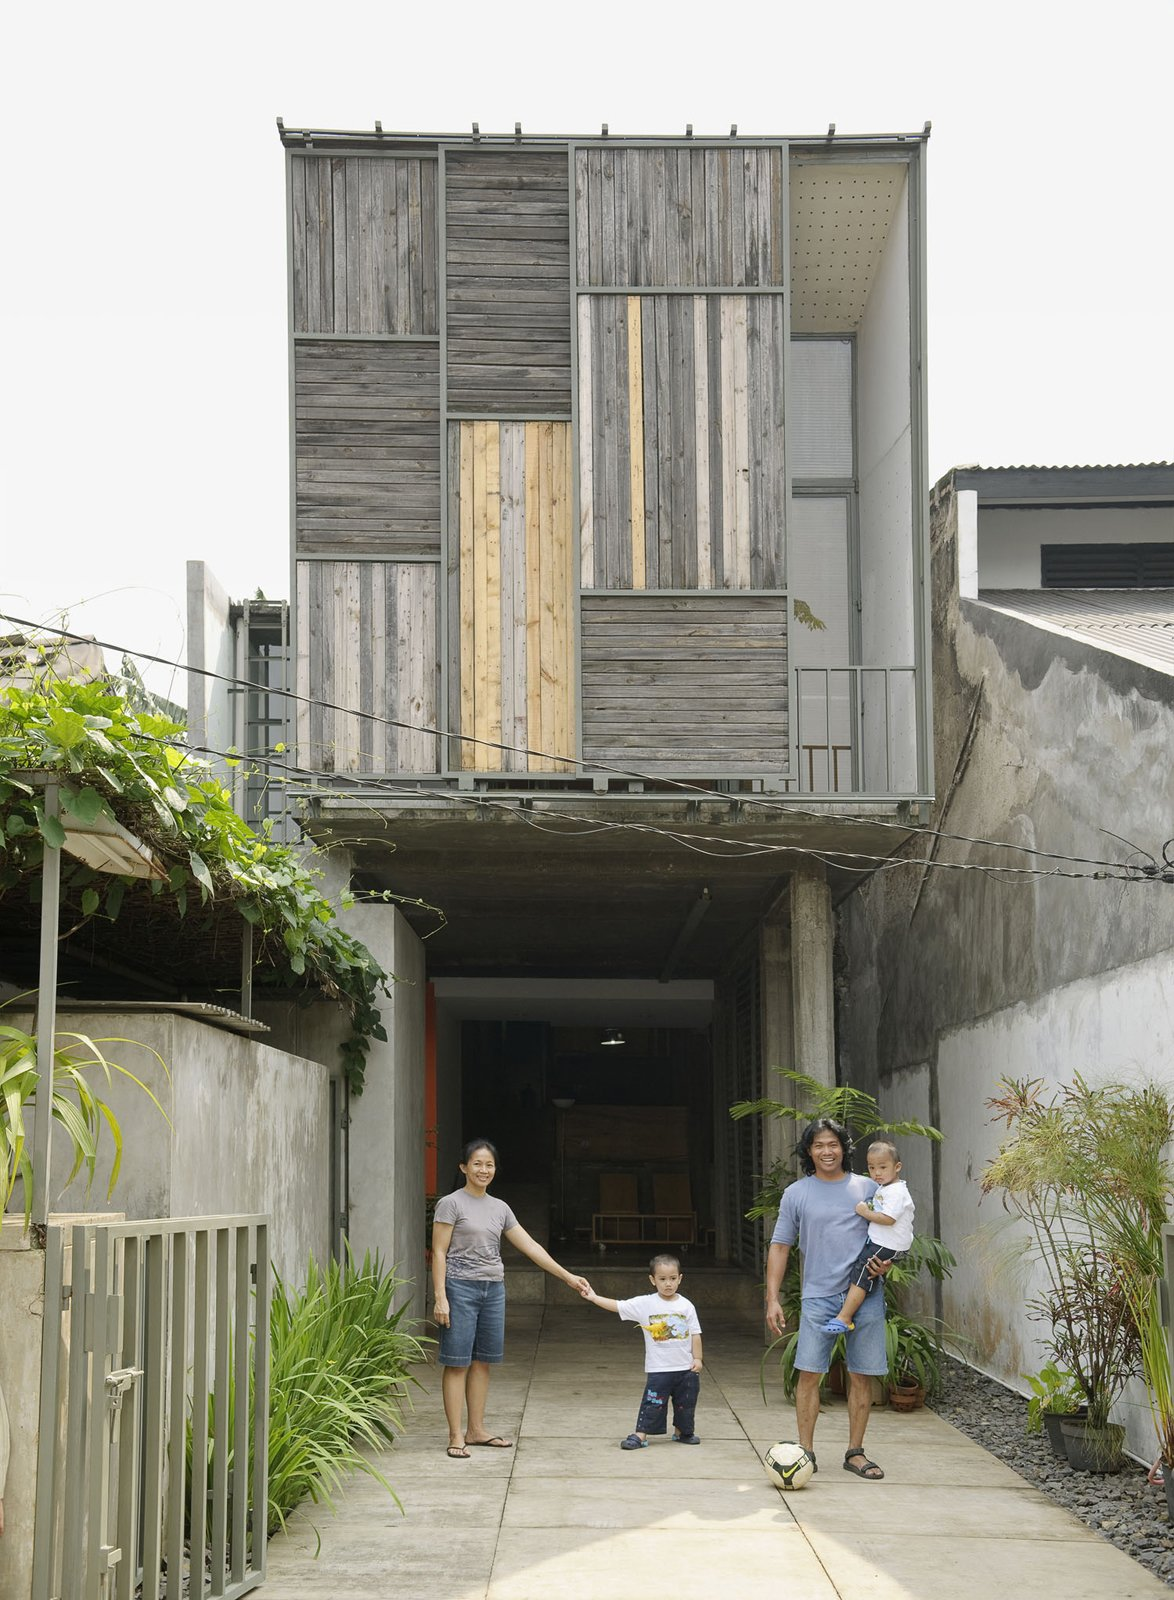 The family poses in the driveway out front of the house. The sliding panels on the facade allow a peek into the balcony just inside.  Photo 18 of 26 in Humid City, Cool Home